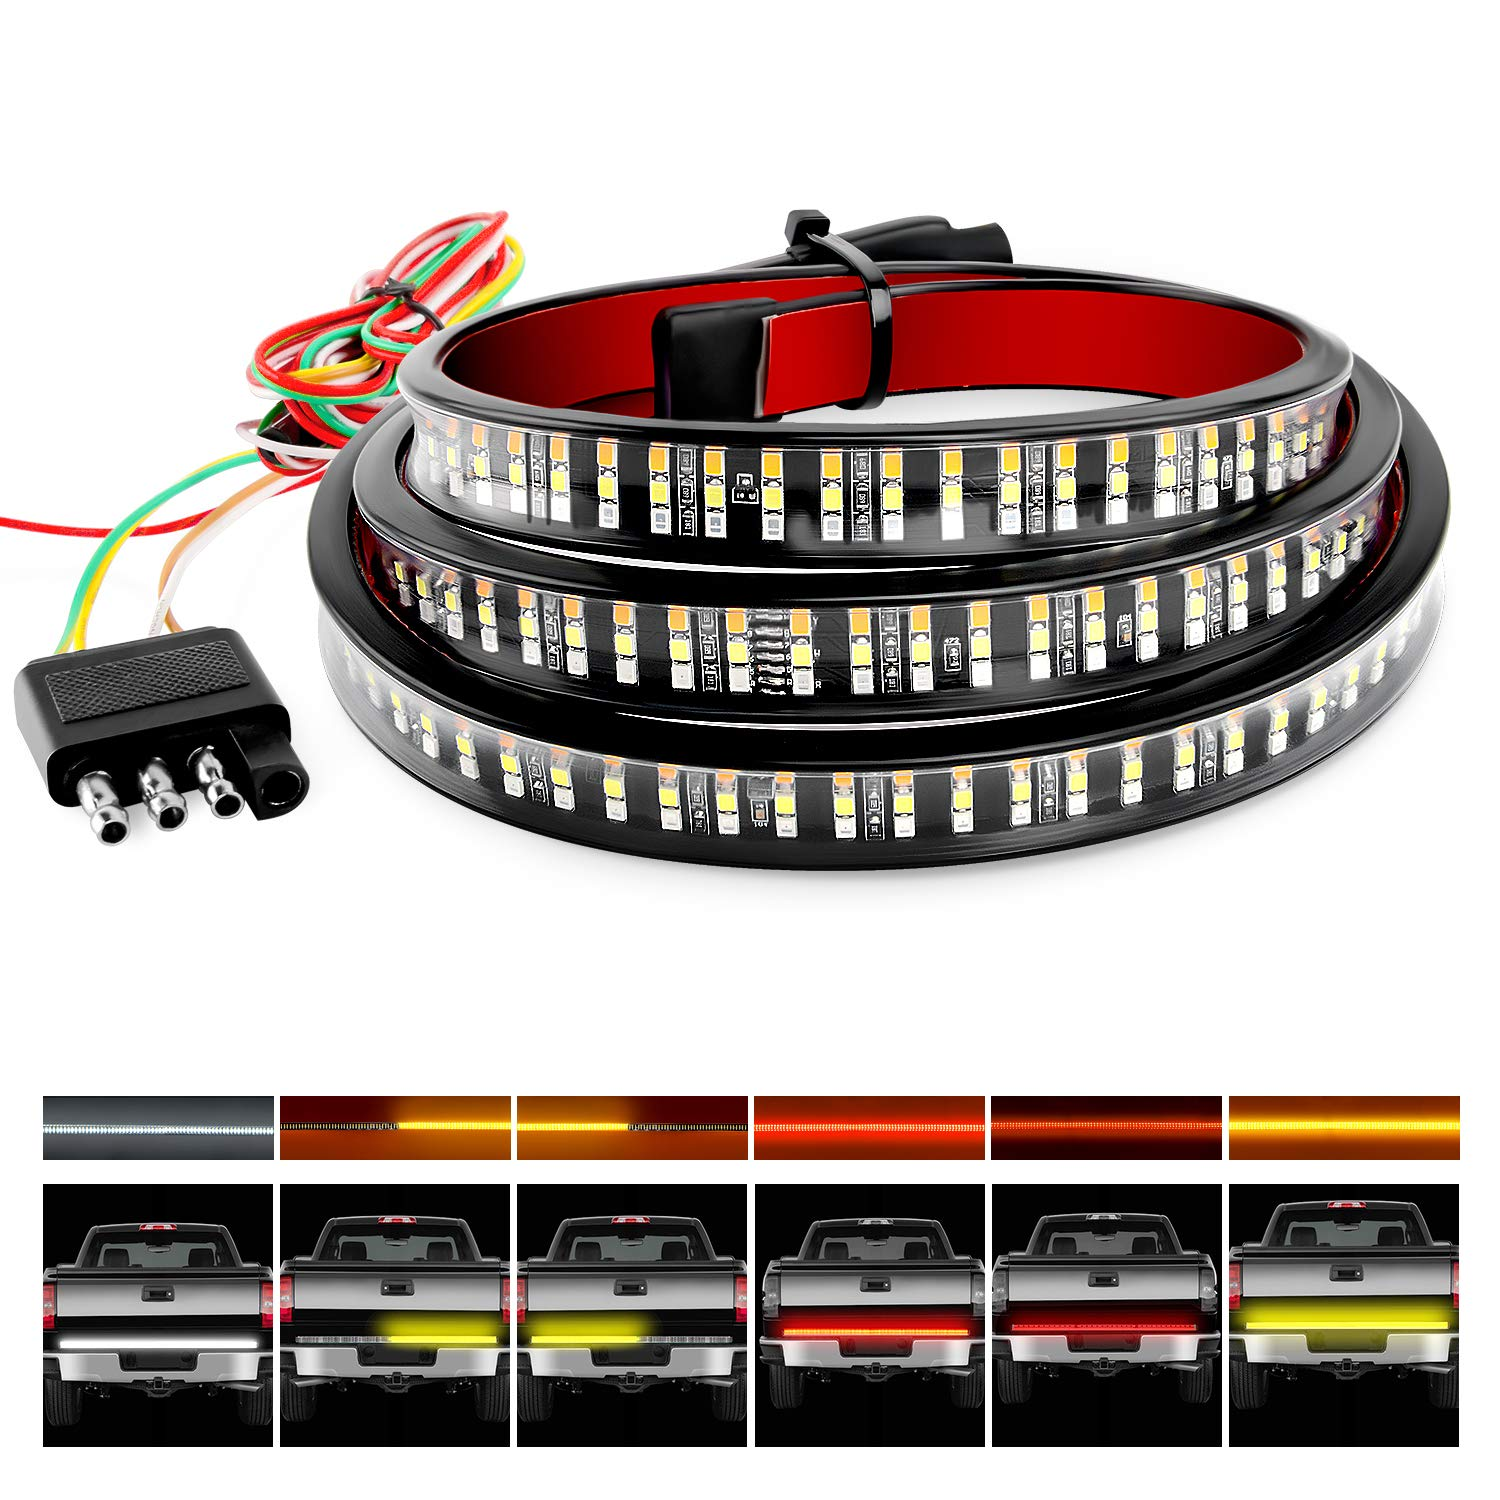 "Nilight TR-04 Truck Tailgate Bar 60"" Triple Row 504 LED Strip with Red Brake White Reverse Sequential Amber Turning Signals Strobe Lights,2 Years Warranty"